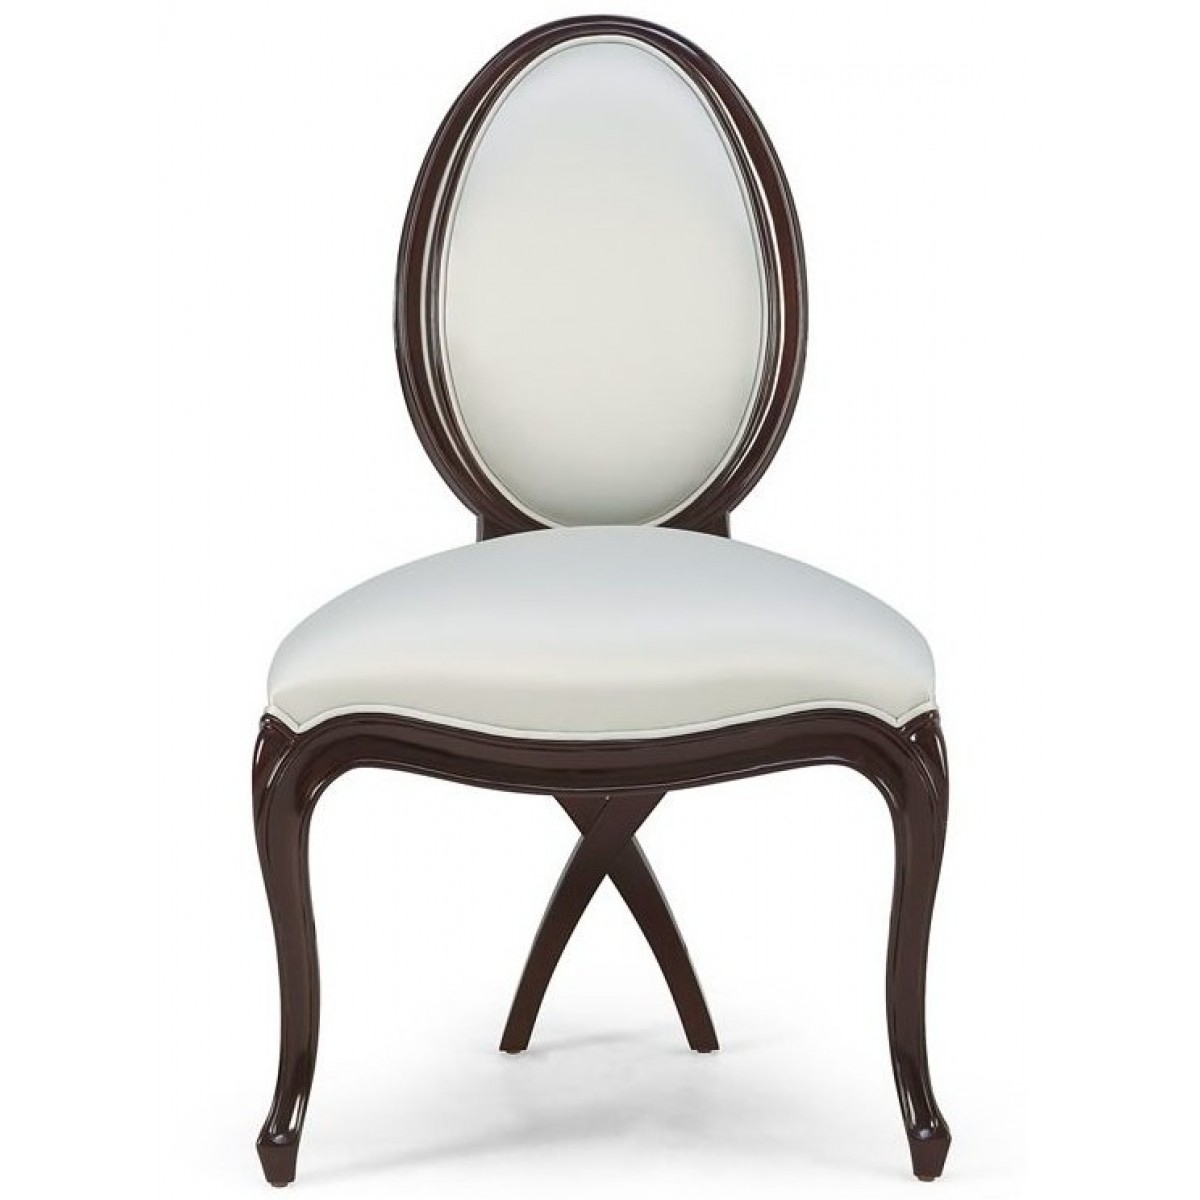 Christopher Guy Laurent Dining Chair With Best And Newest Laurent Wood Side Chairs (View 6 of 20)